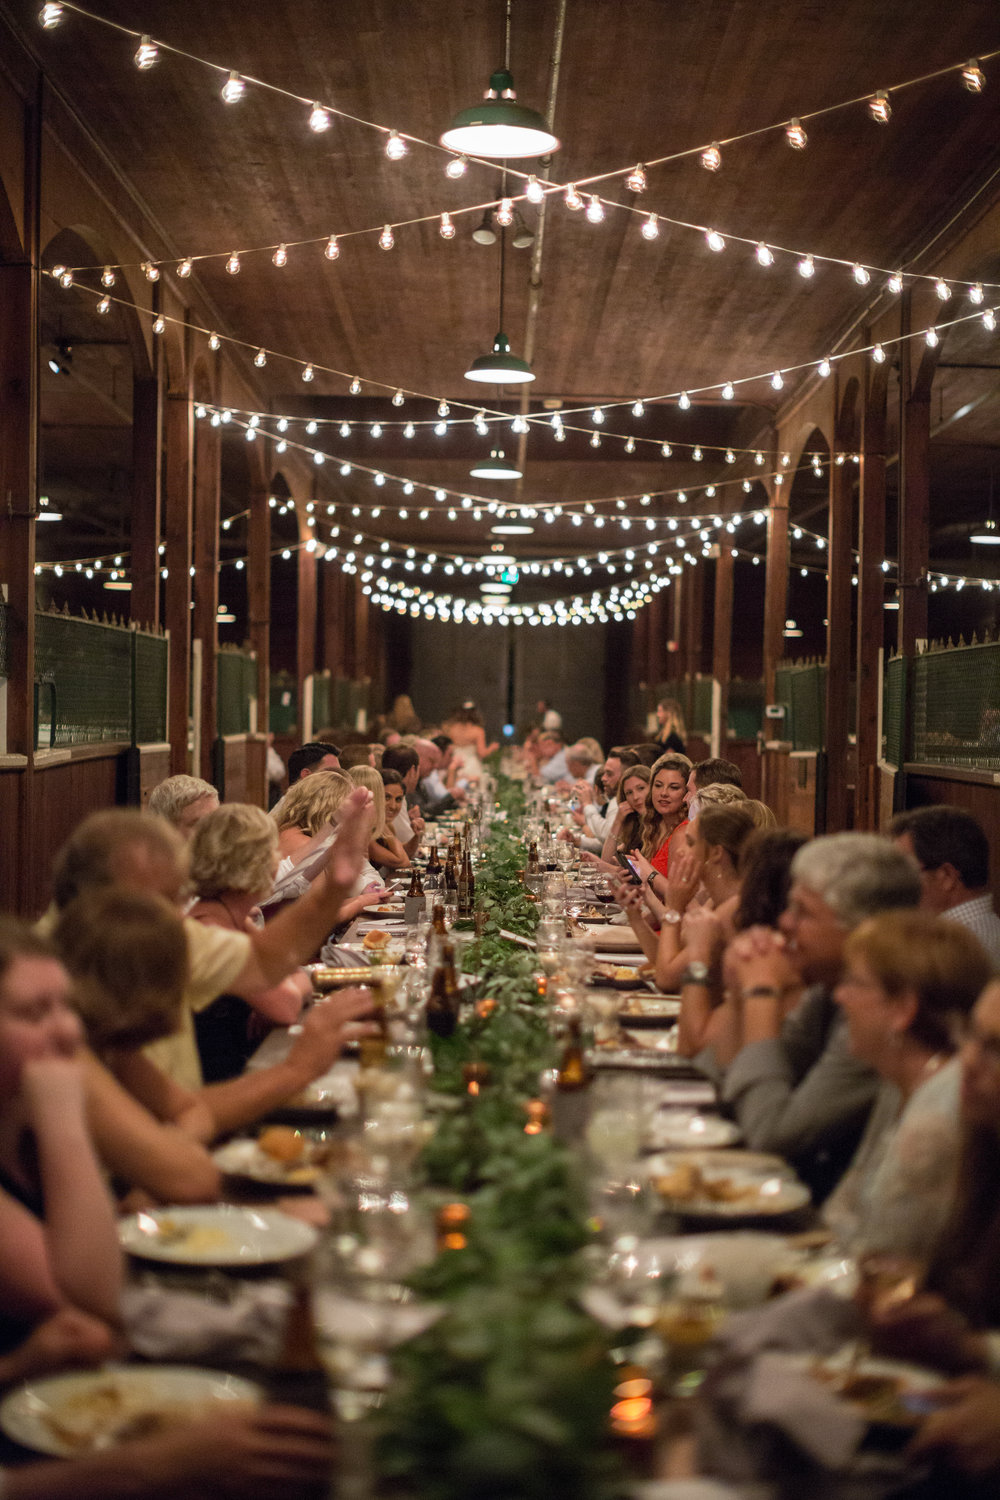 Belle Meade Plantation - Summer Wedding - Nashville, TN - Martin's BBQ Catering